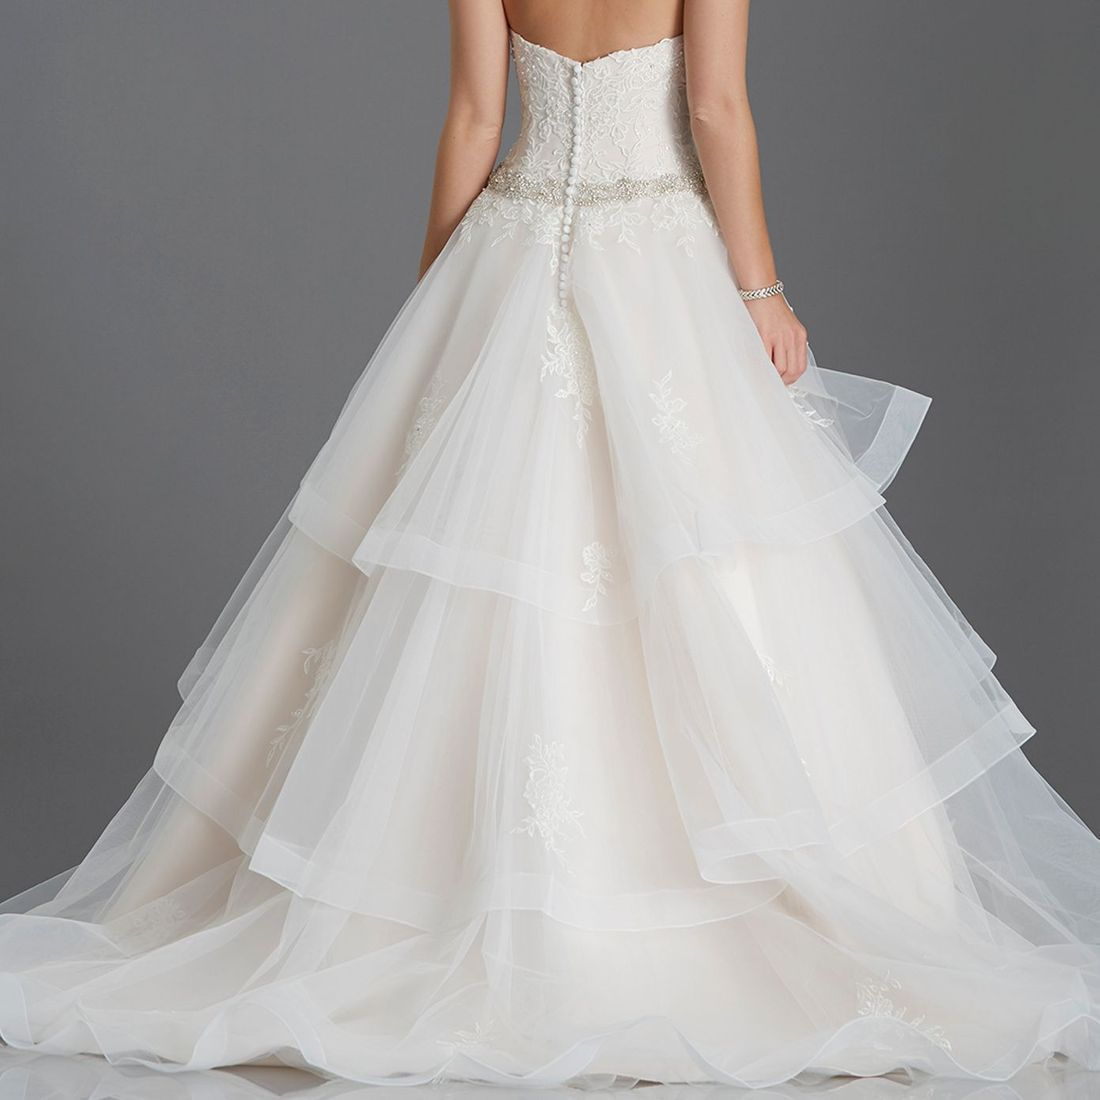 Layered tulle ballgown crystal bodice